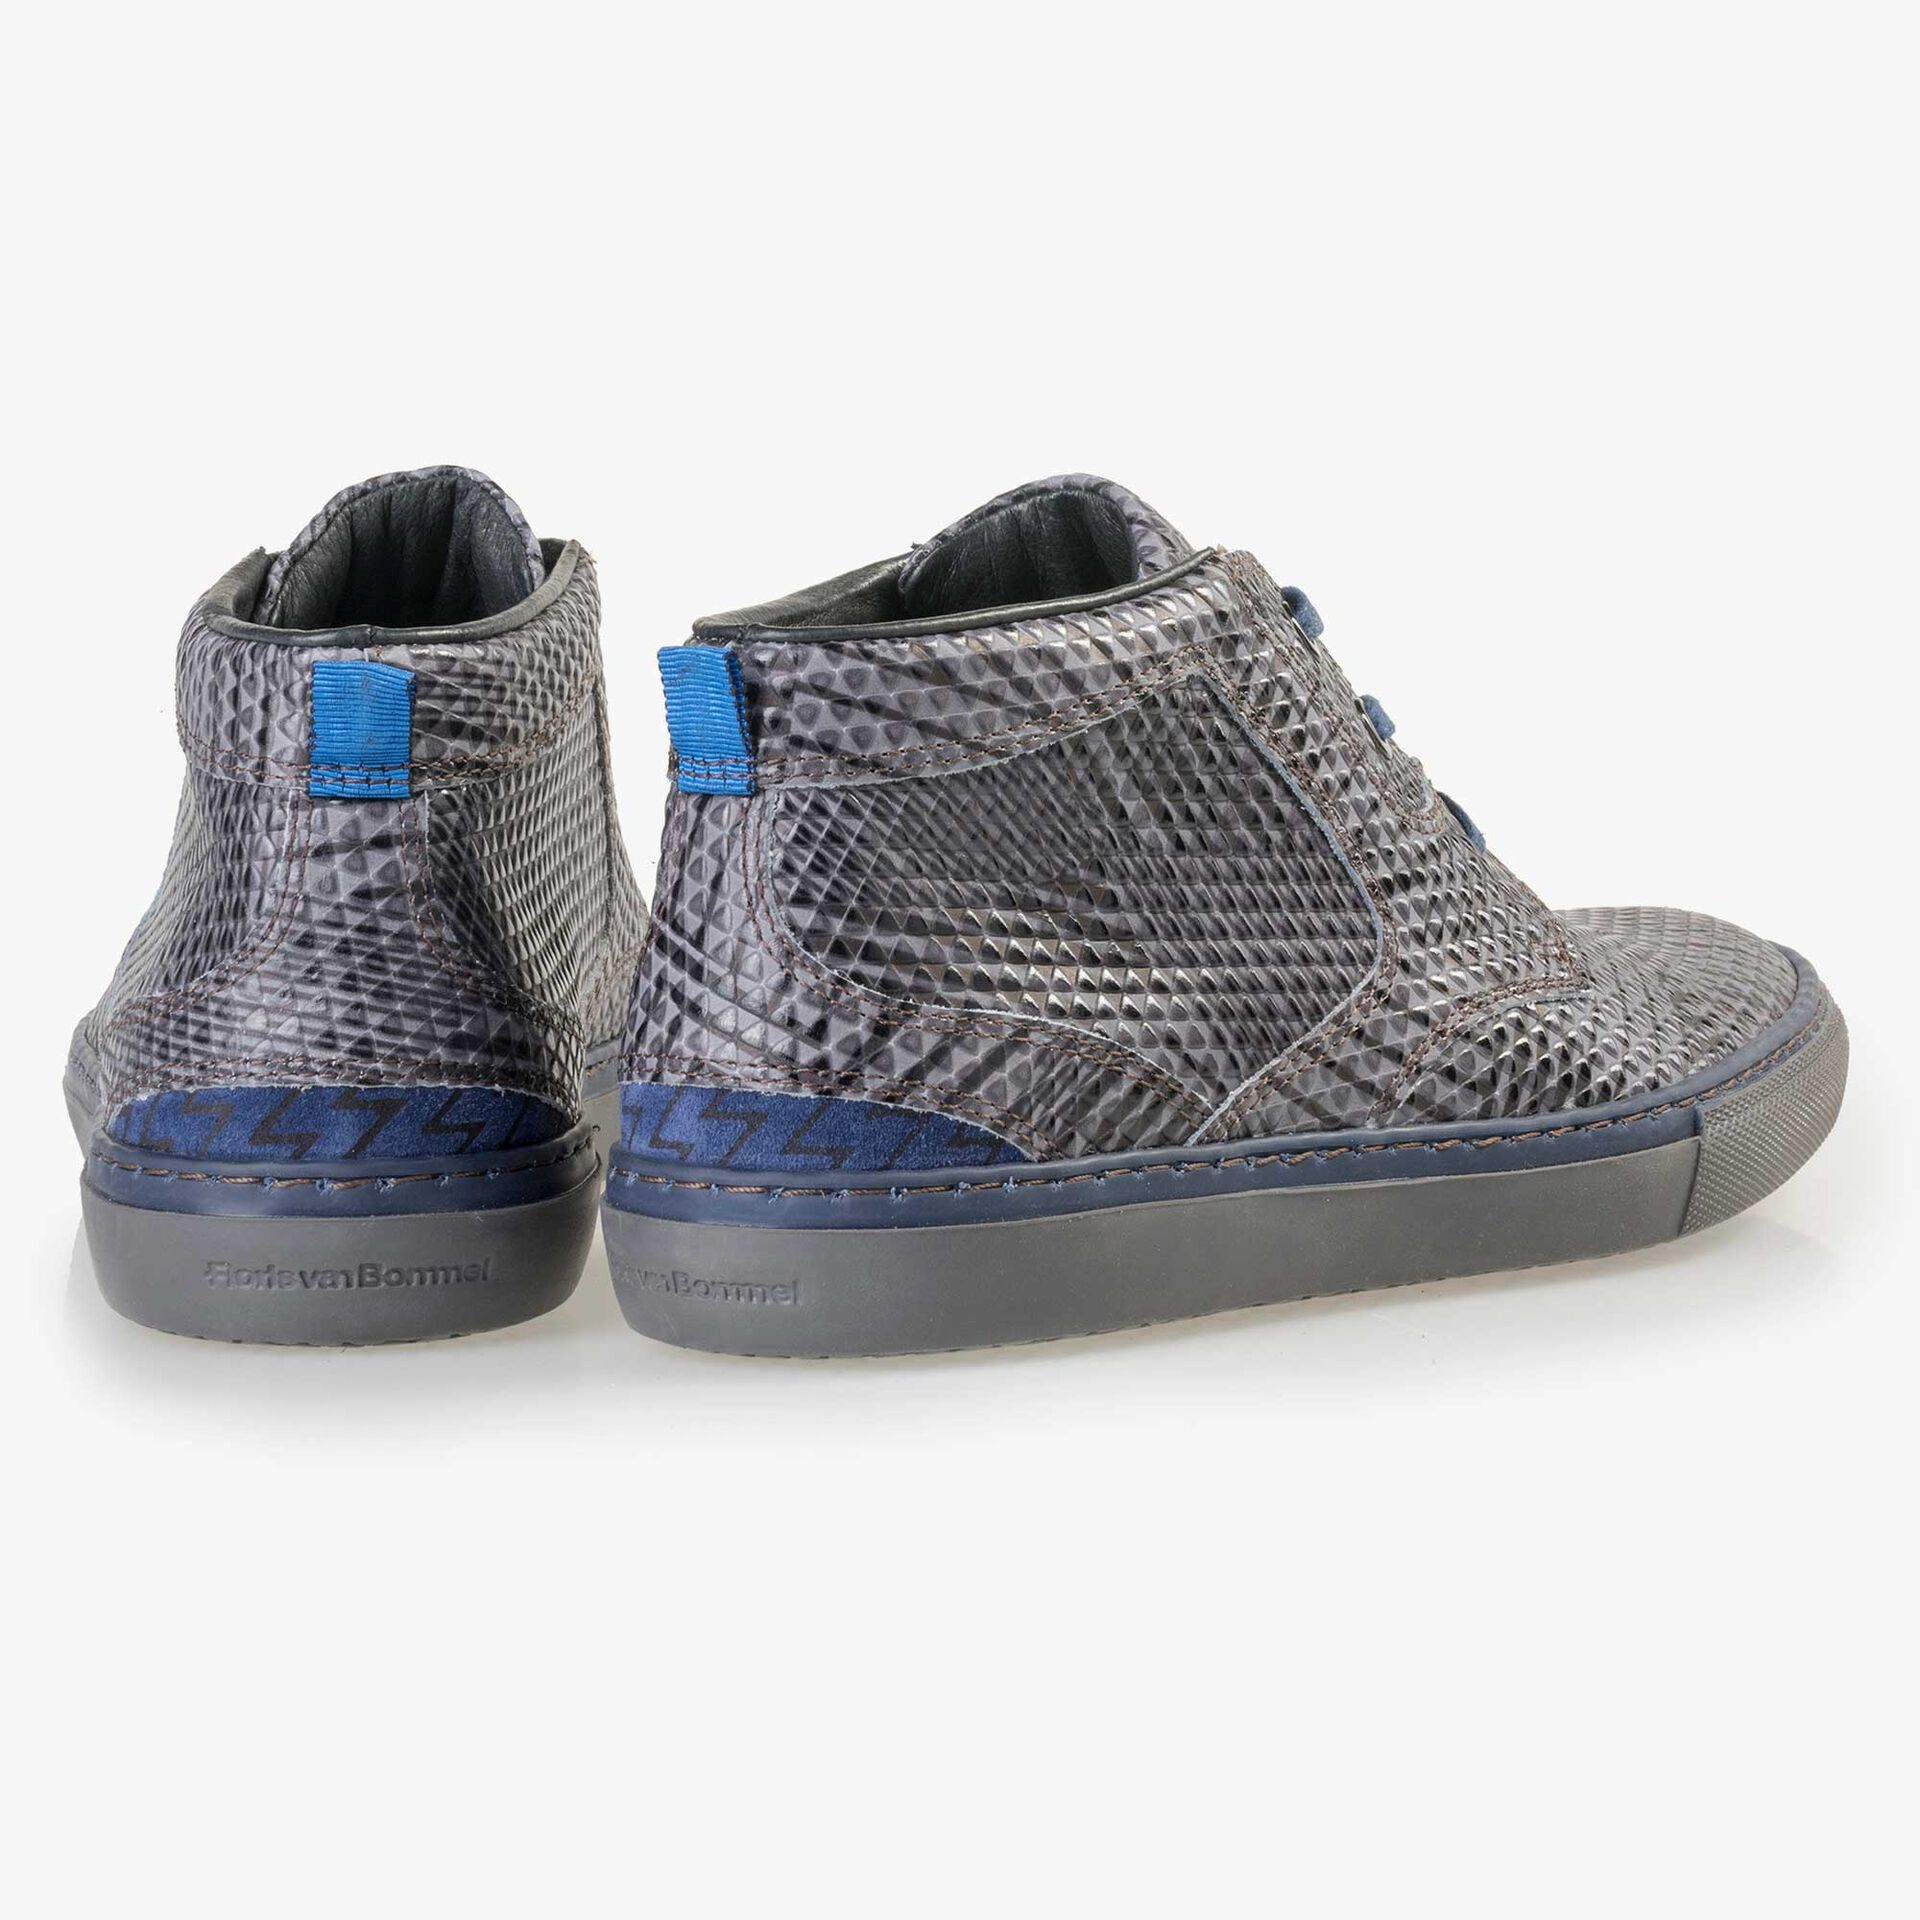 Floris van Bommel men's grey leather lace boot finished with a striped pattern